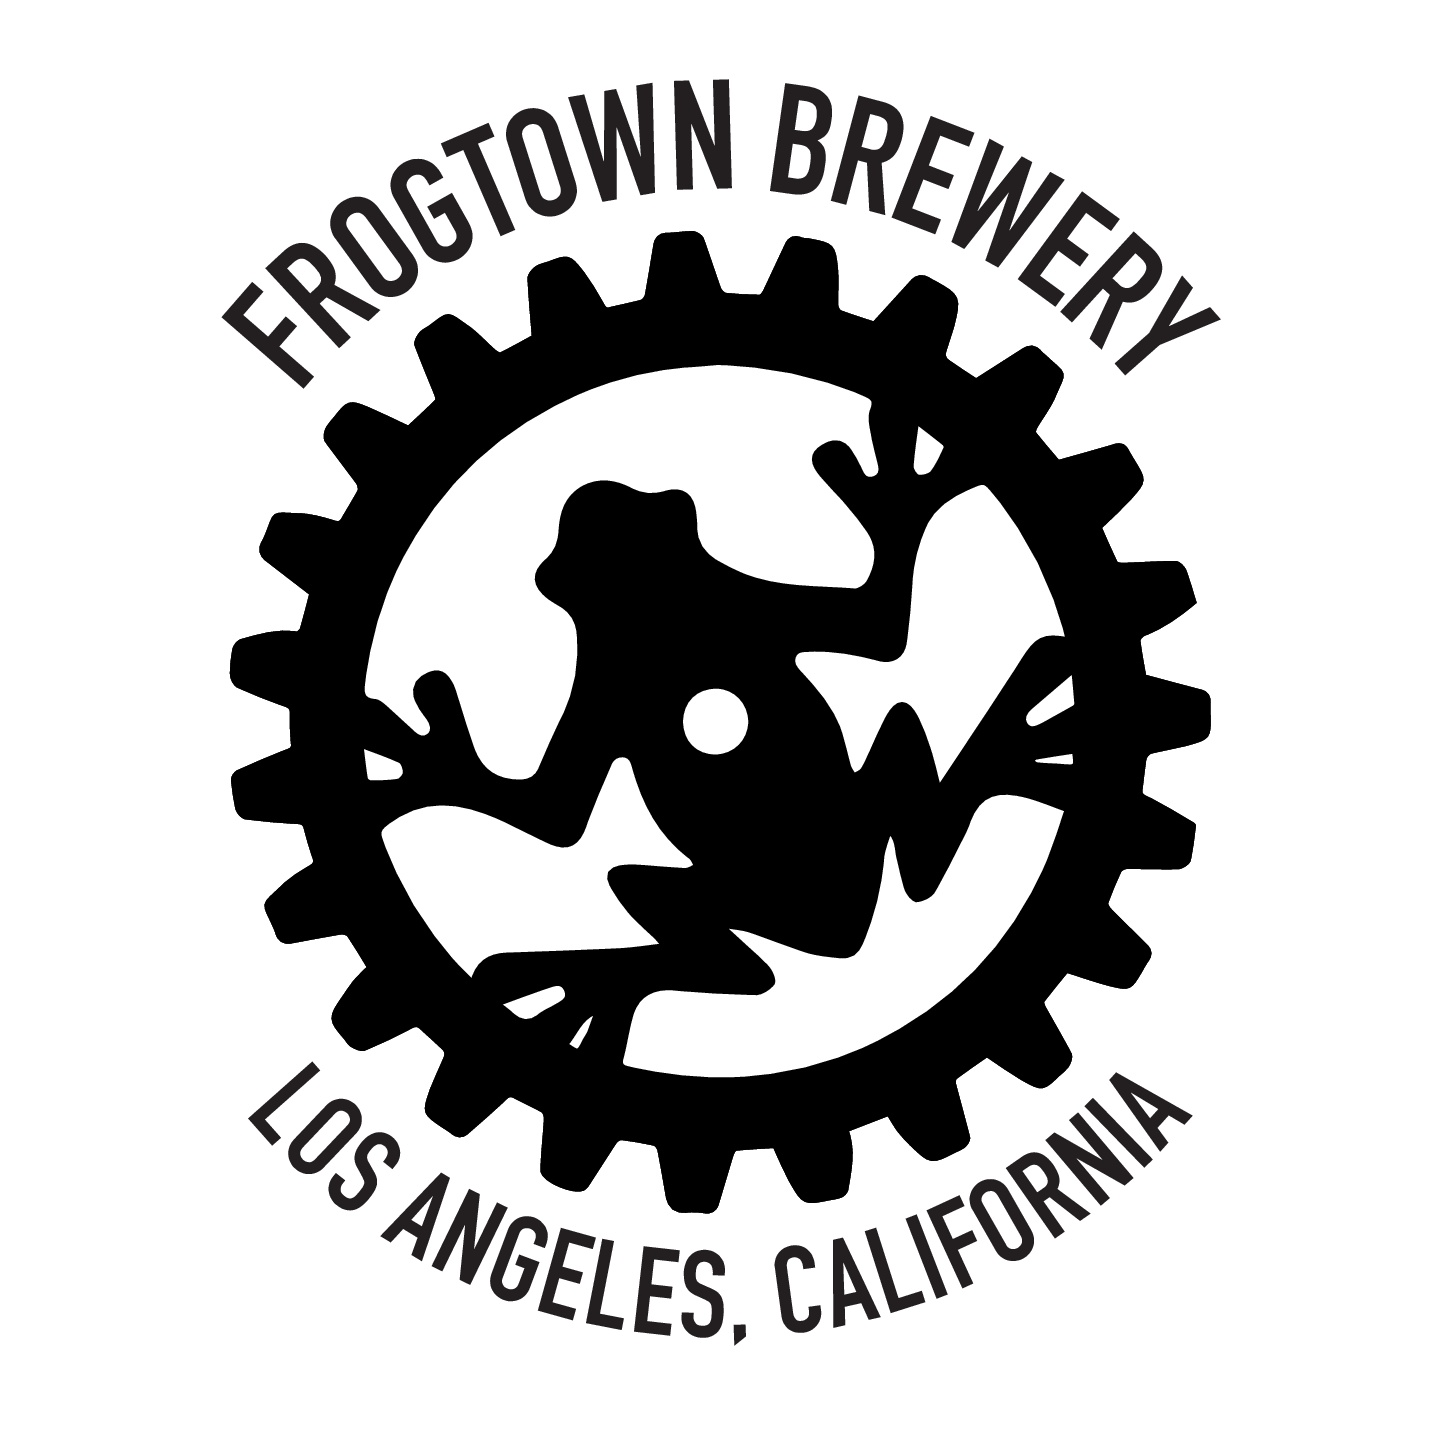 Frogtown Brewery